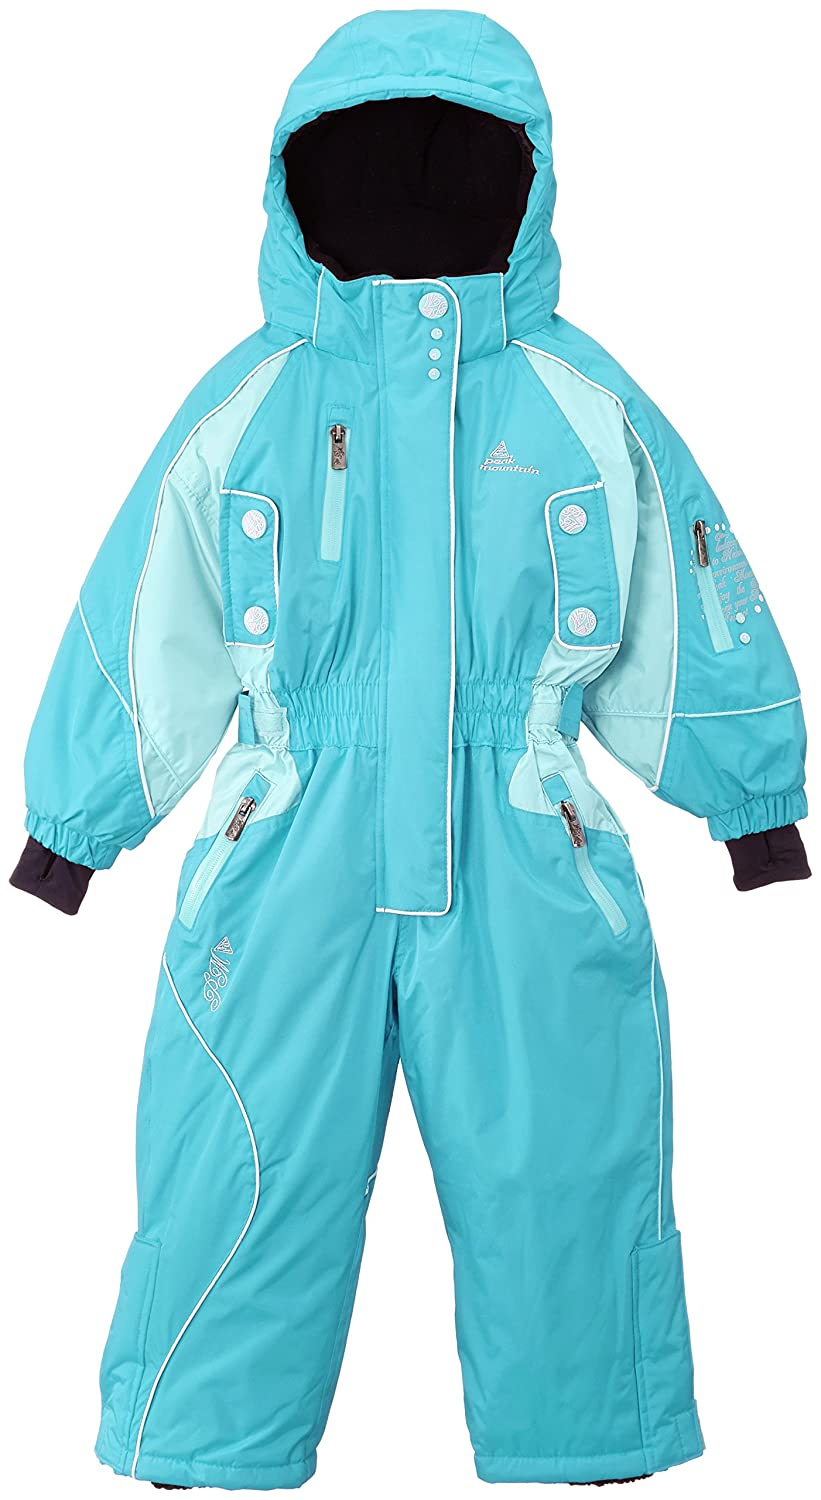 Peak Mountain Fiski/3-8/nh Girls' Ski Suit